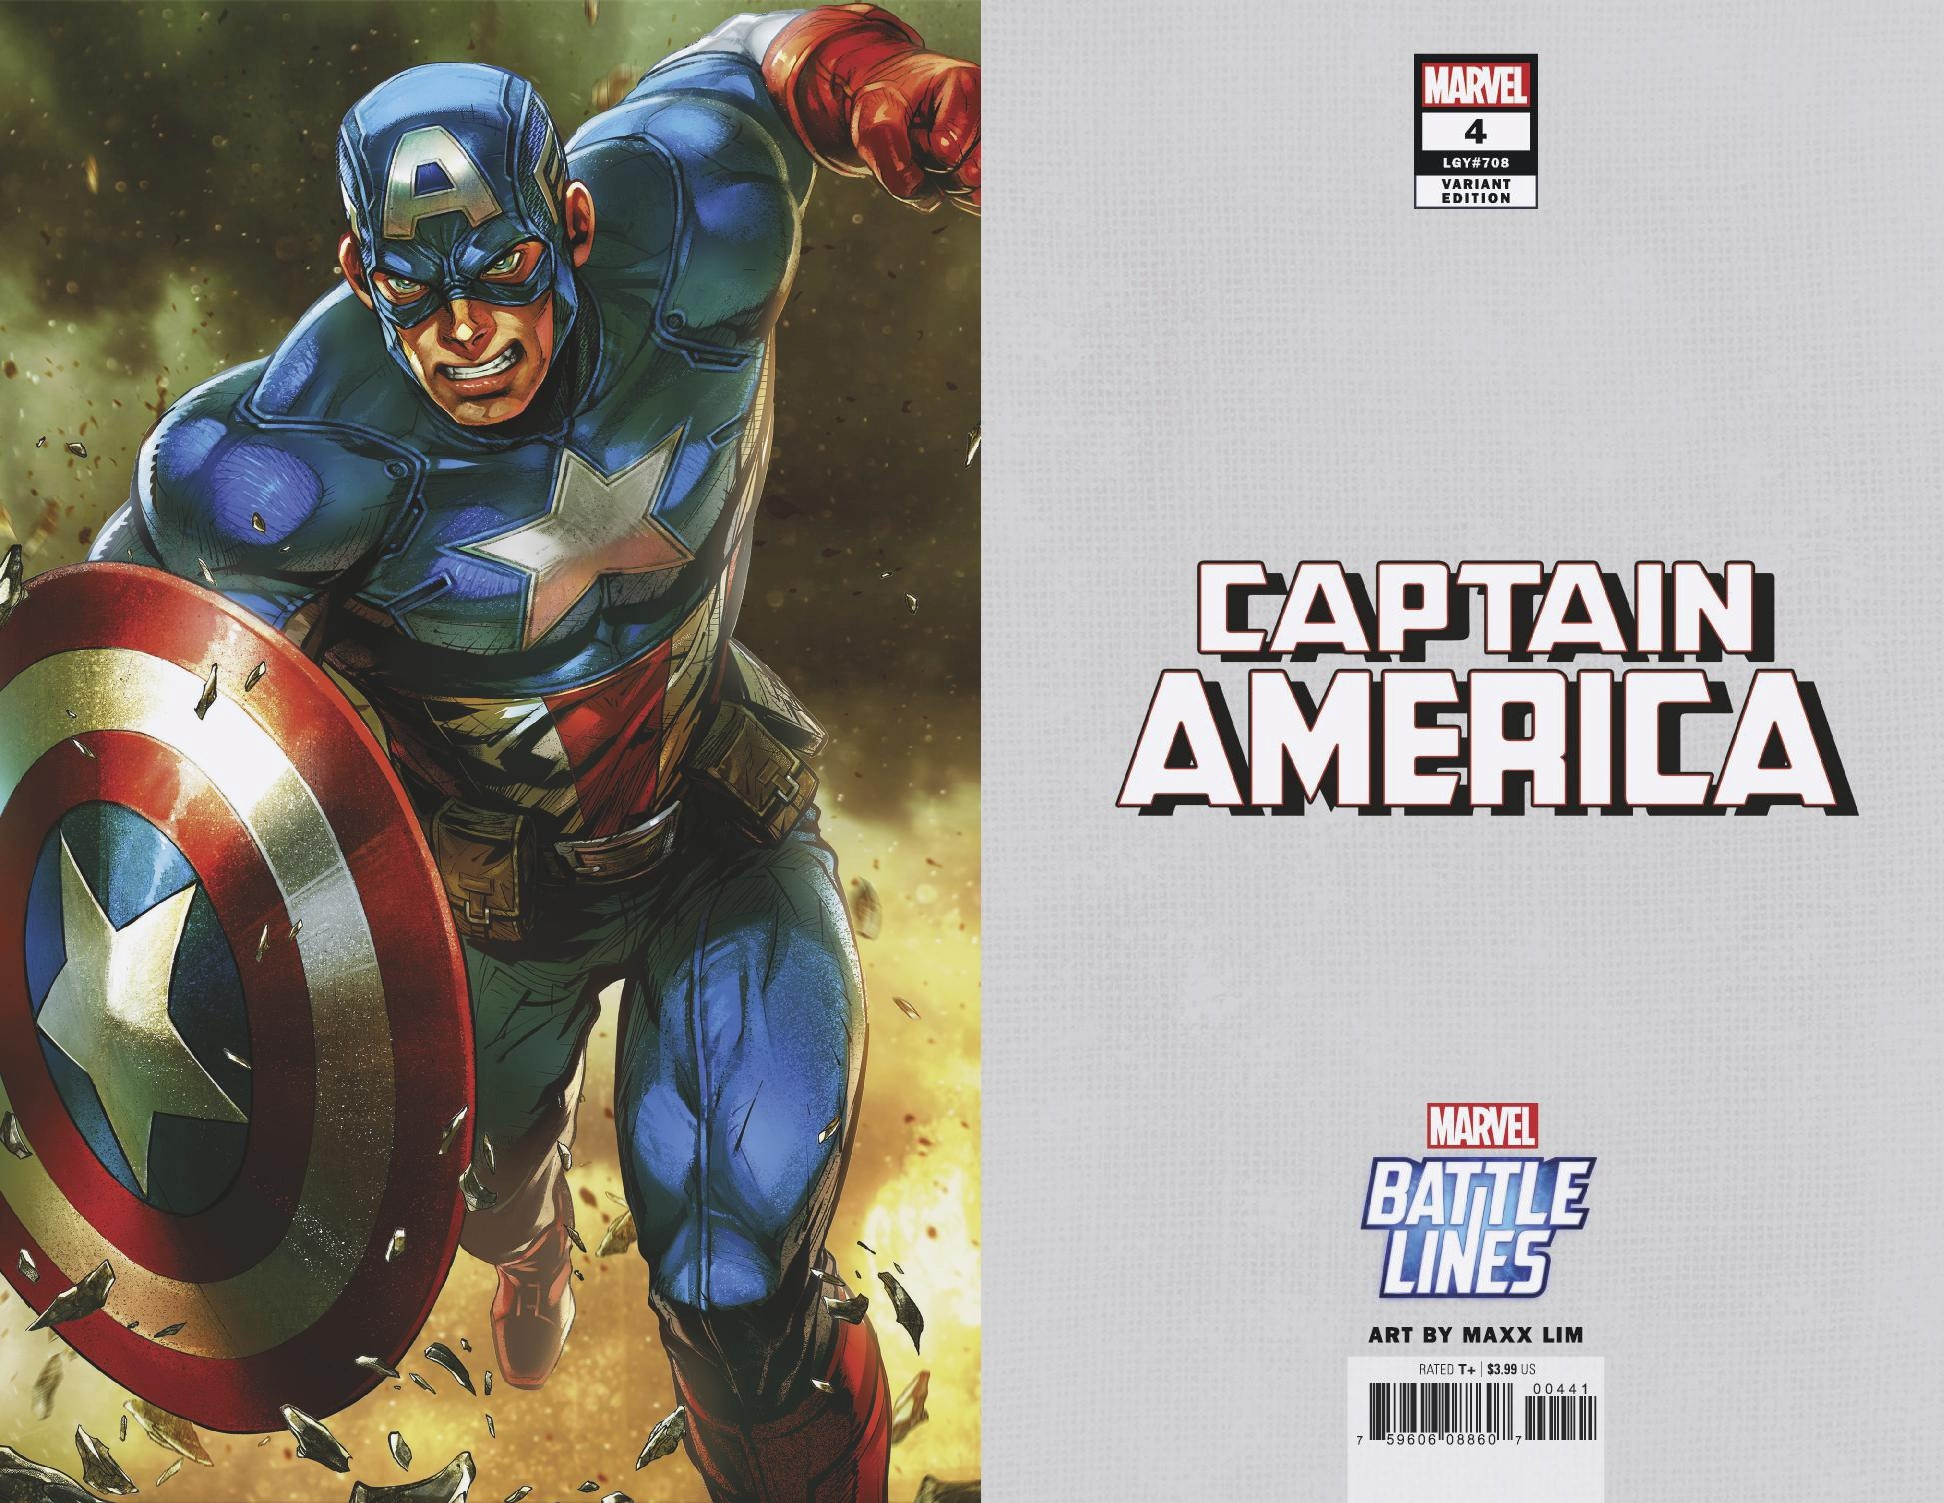 CAPTAIN AMERICA #4 MAXX LIM MARVEL BATTLE LINES VAR